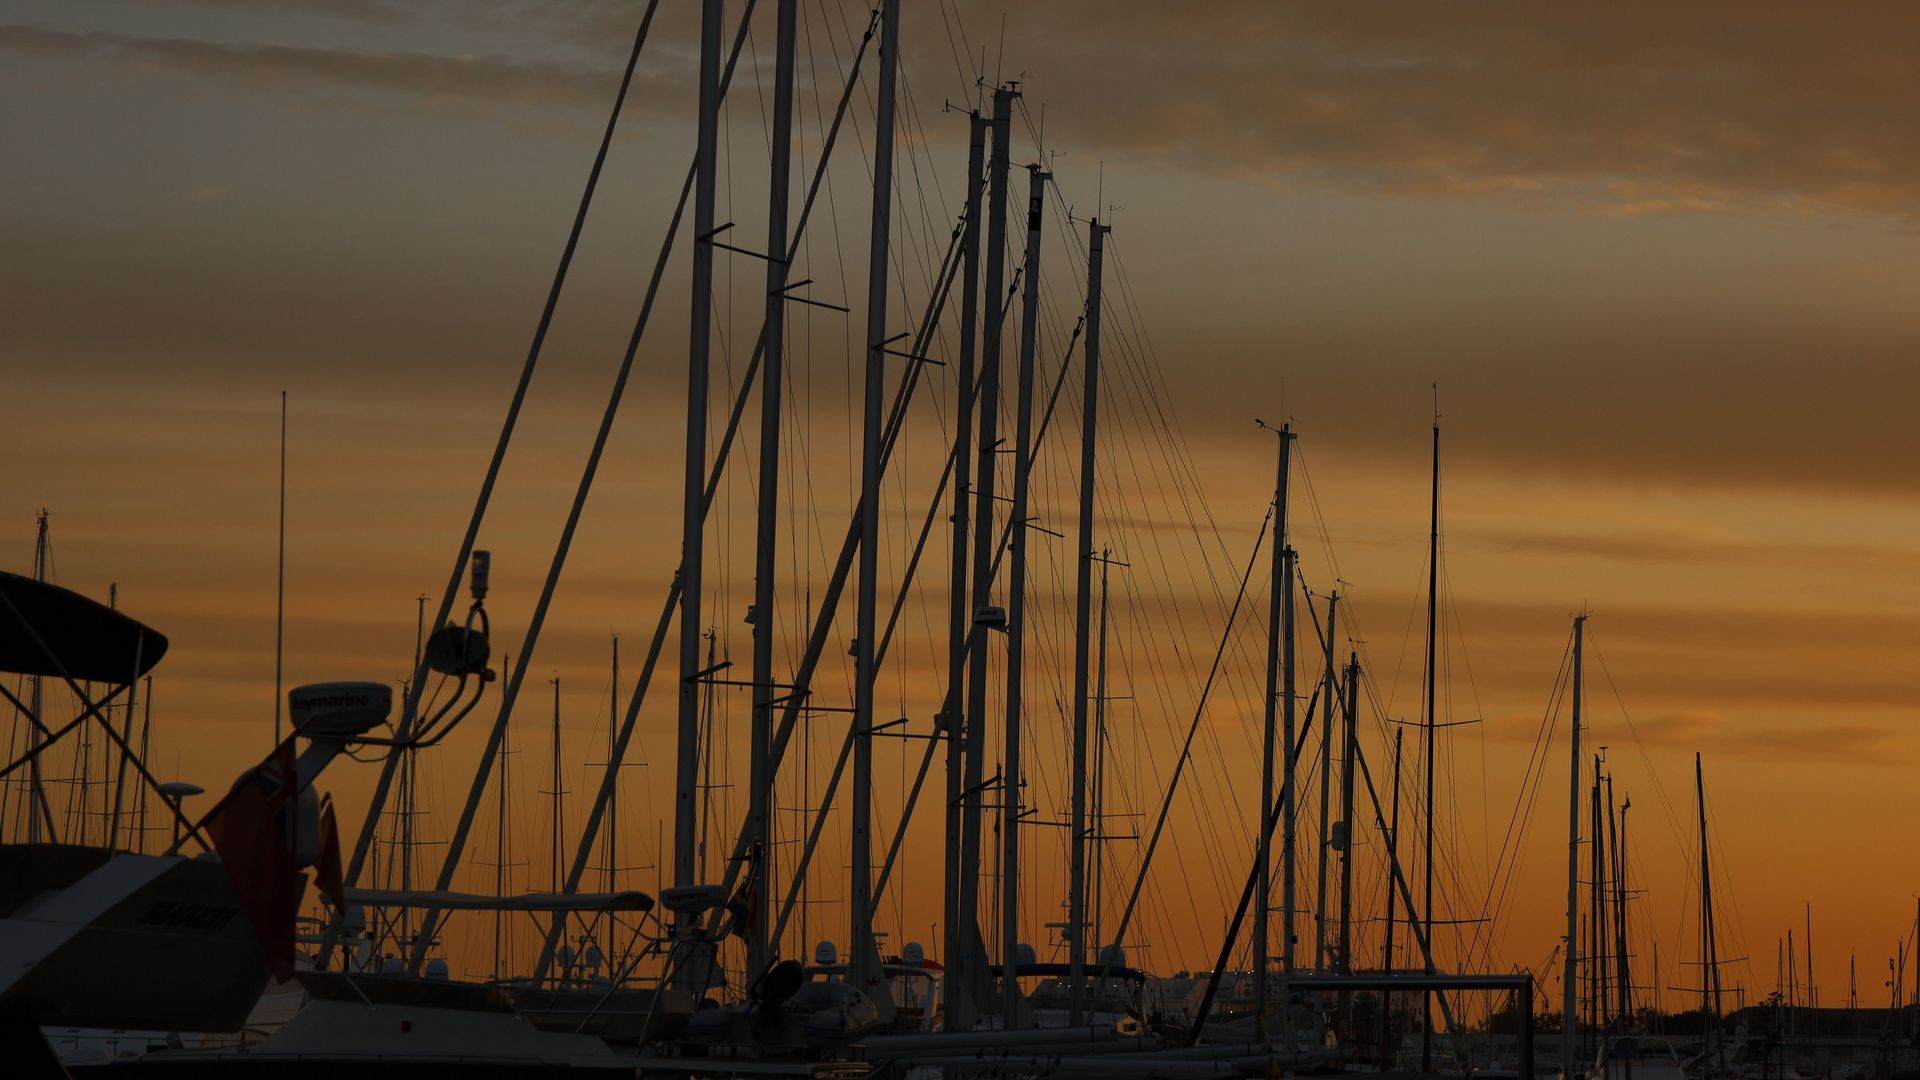 Shot on RF 24-105mm F4-7.1 IS STM of sailing boat masts at sunset